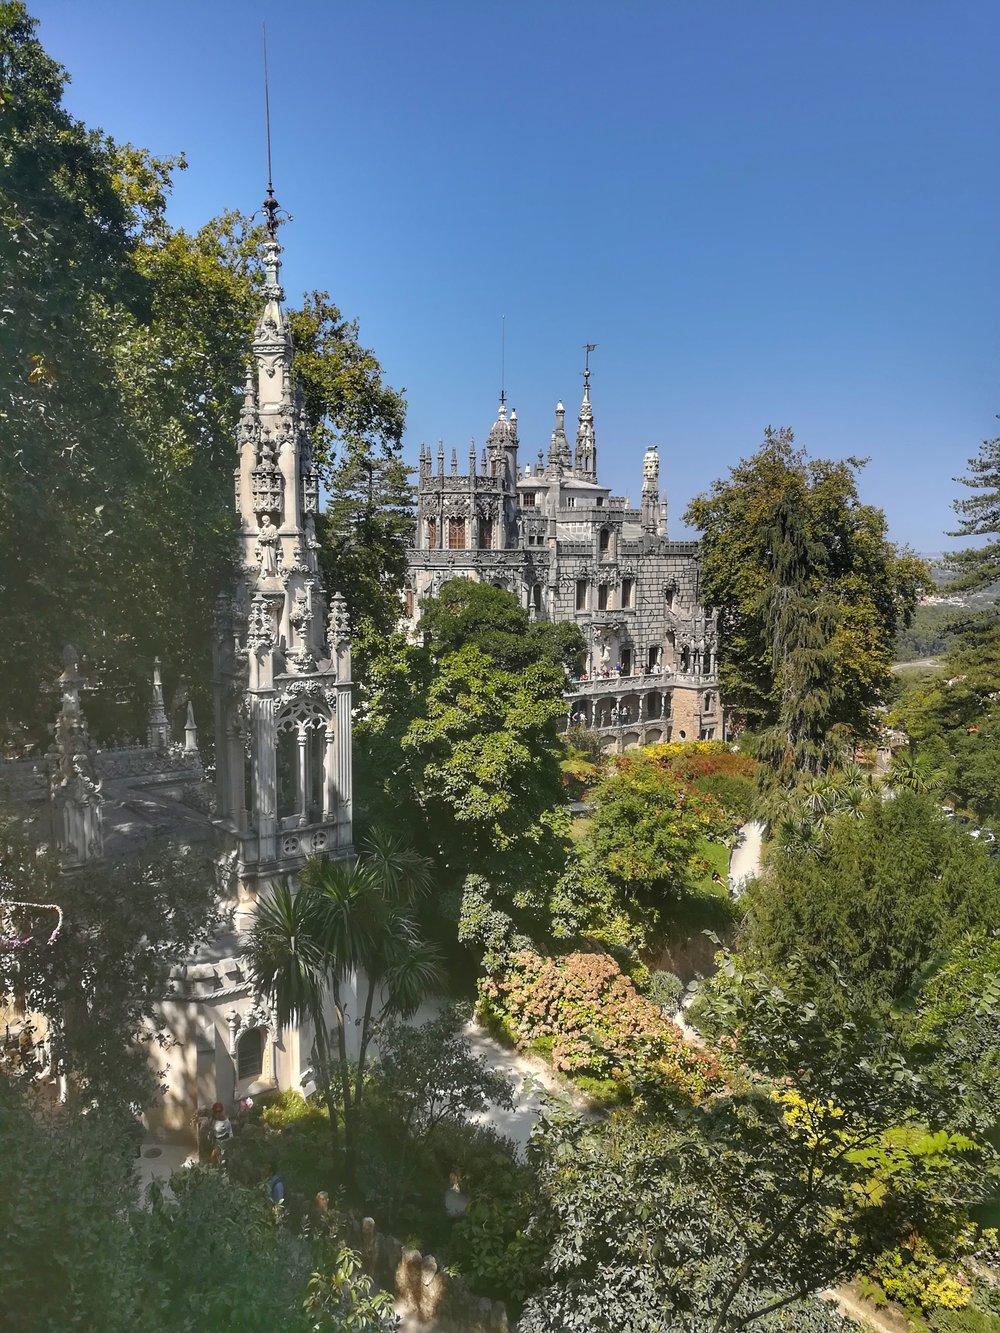 He mansion that vy rich people had built and lived in called Quinta da Regaleira.